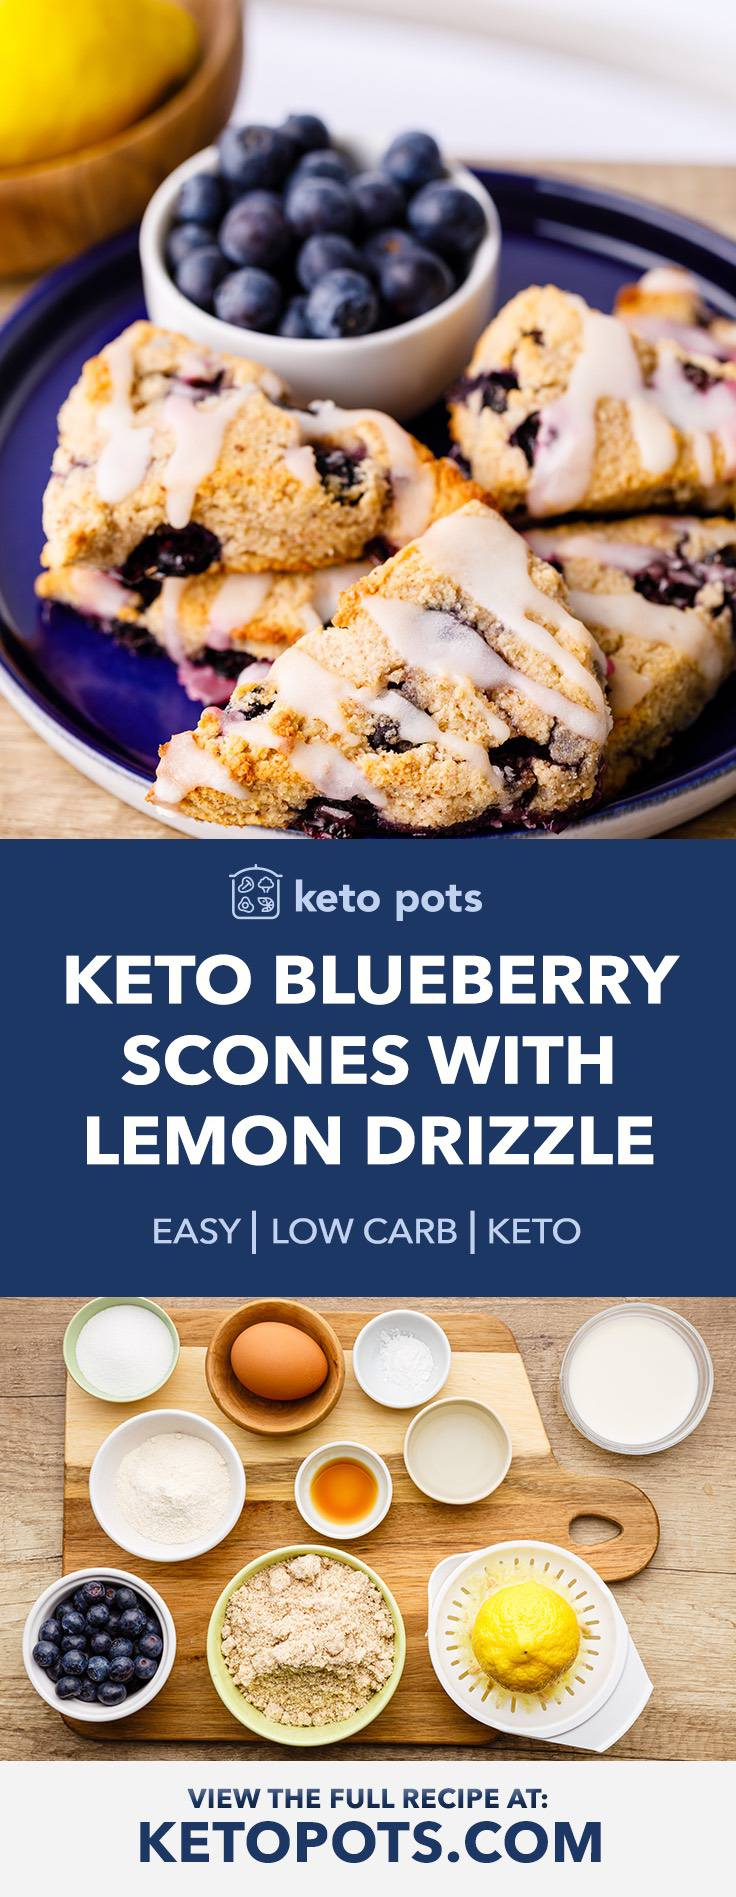 Melt In Your Mouth Keto Blueberry Scones with Lemon Drizzle